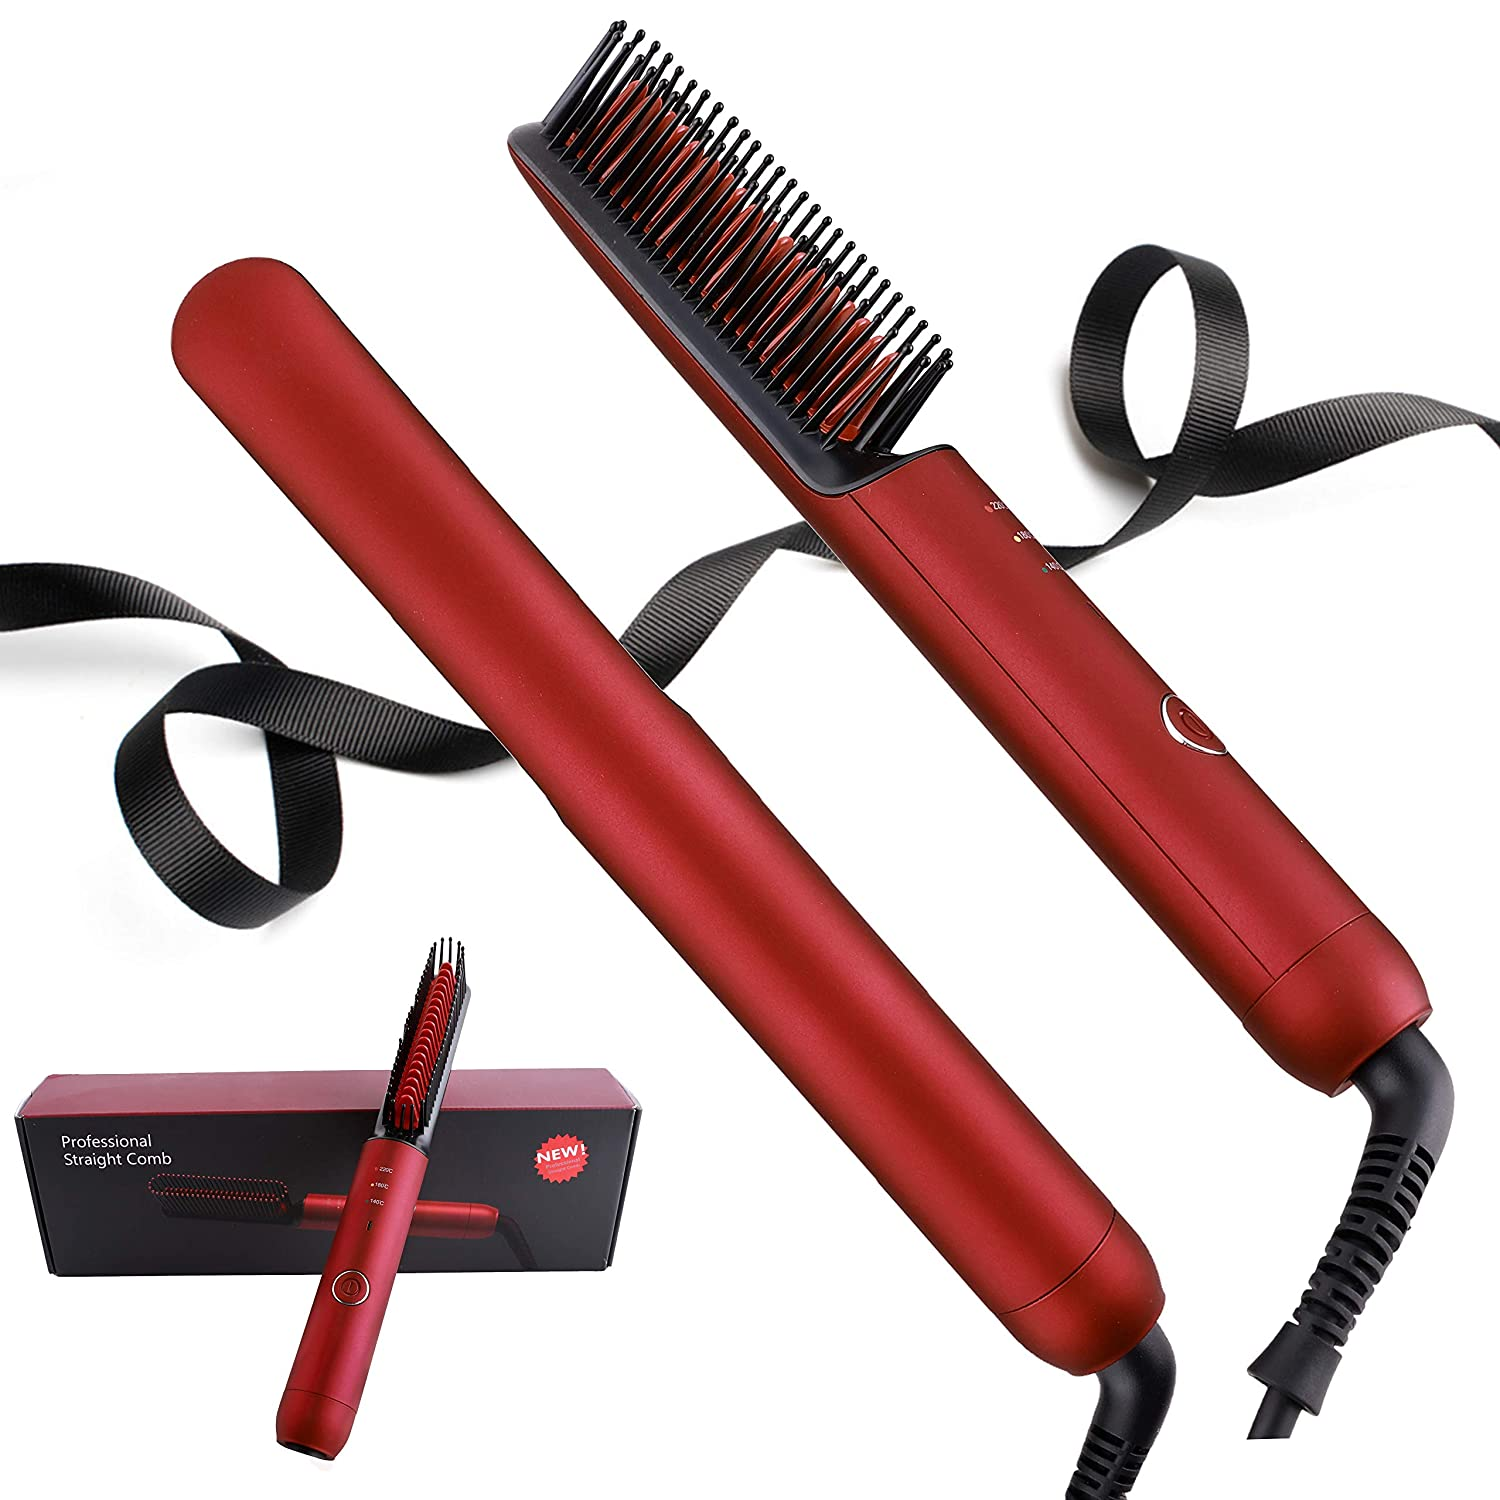 Hair Straightener Brush–Negative Ionic Hair Straightening Comb Electrical Hot Comb 30s Fast Heating & 3 Temp Settings & Anti-Scald, Professional Straightening Comb for Salon & Home (Red)